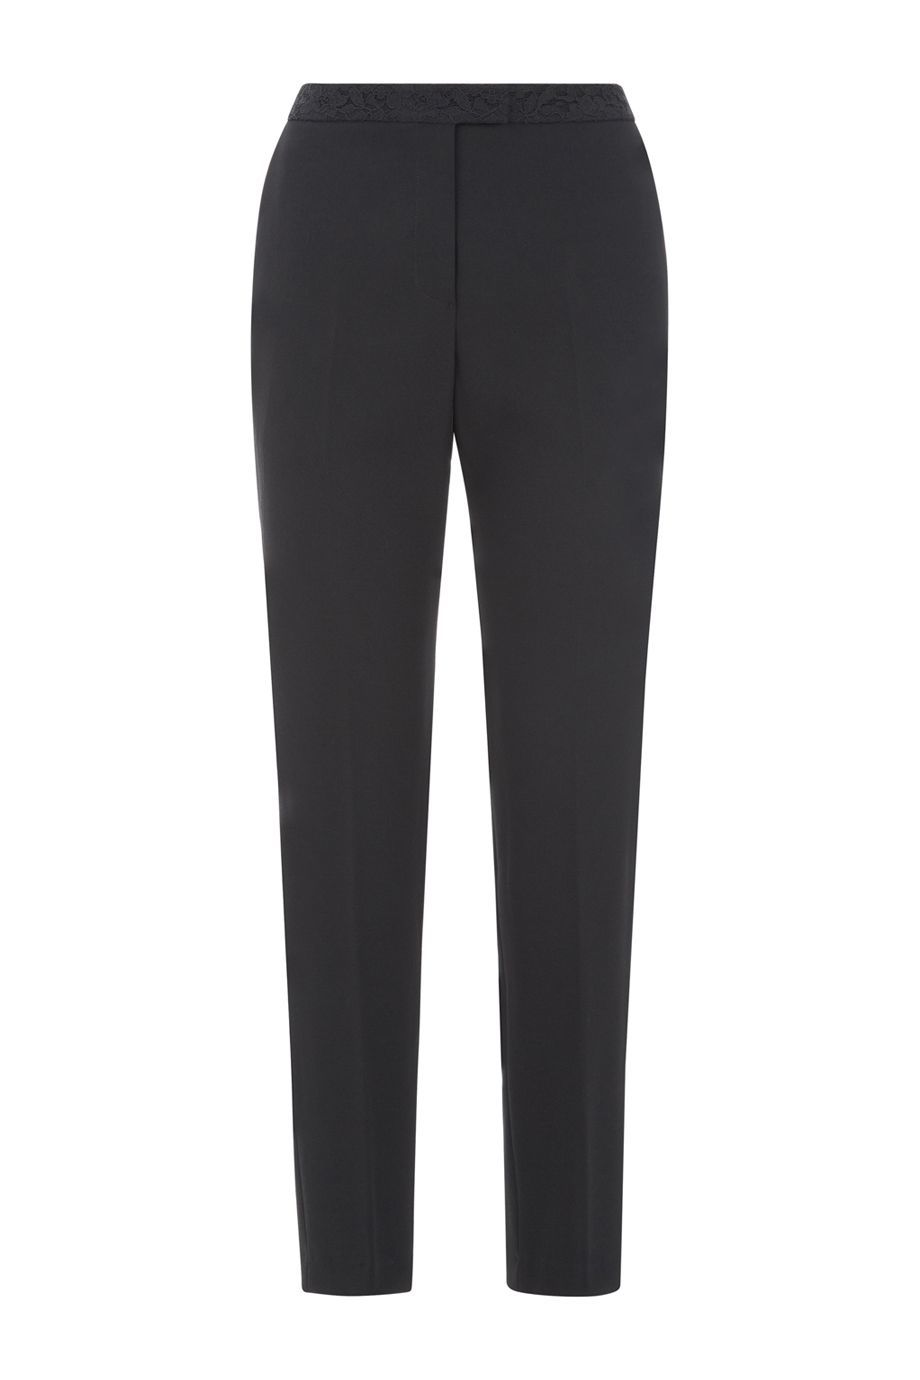 Marti Trouser, Black - length: standard; pattern: plain; waist: high rise; predominant colour: black; occasions: work; fibres: polyester/polyamide - 100%; waist detail: narrow waistband; texture group: crepes; fit: straight leg; pattern type: fabric; style: standard; season: a/w 2015; wardrobe: basic